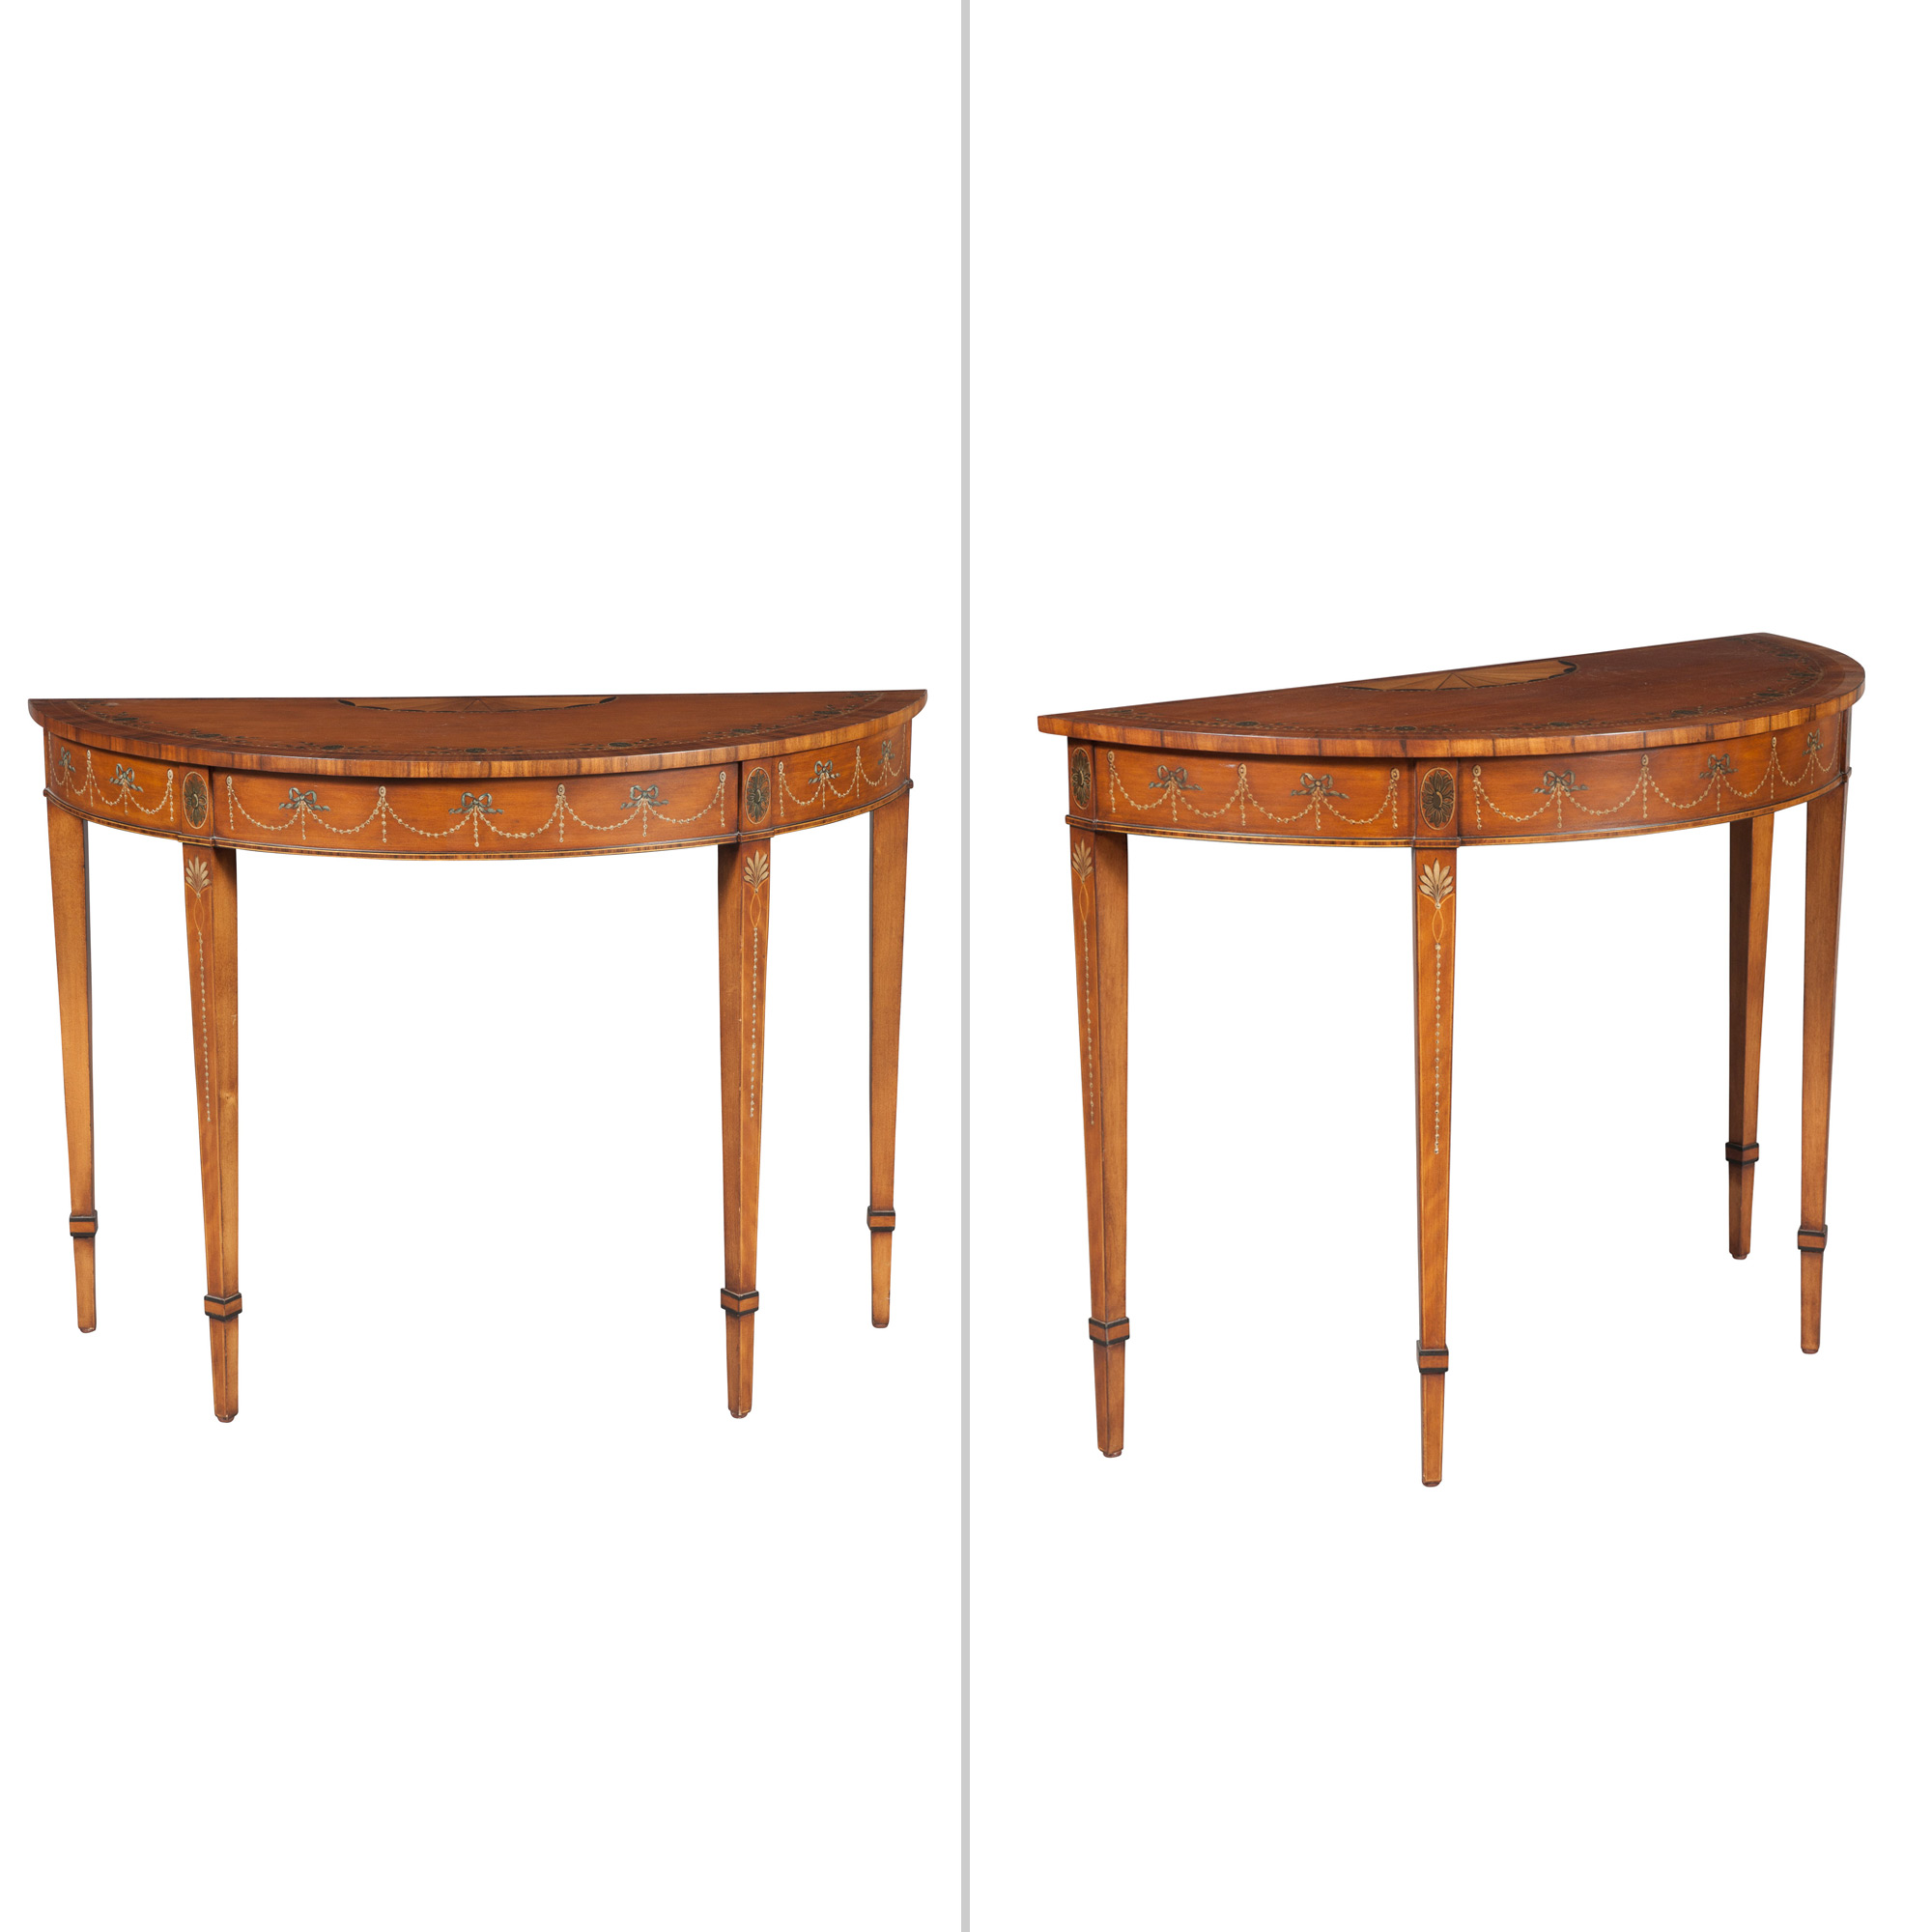 Lot image - Pair of George III Style Maple and Part-Painted D-Shaped Tables